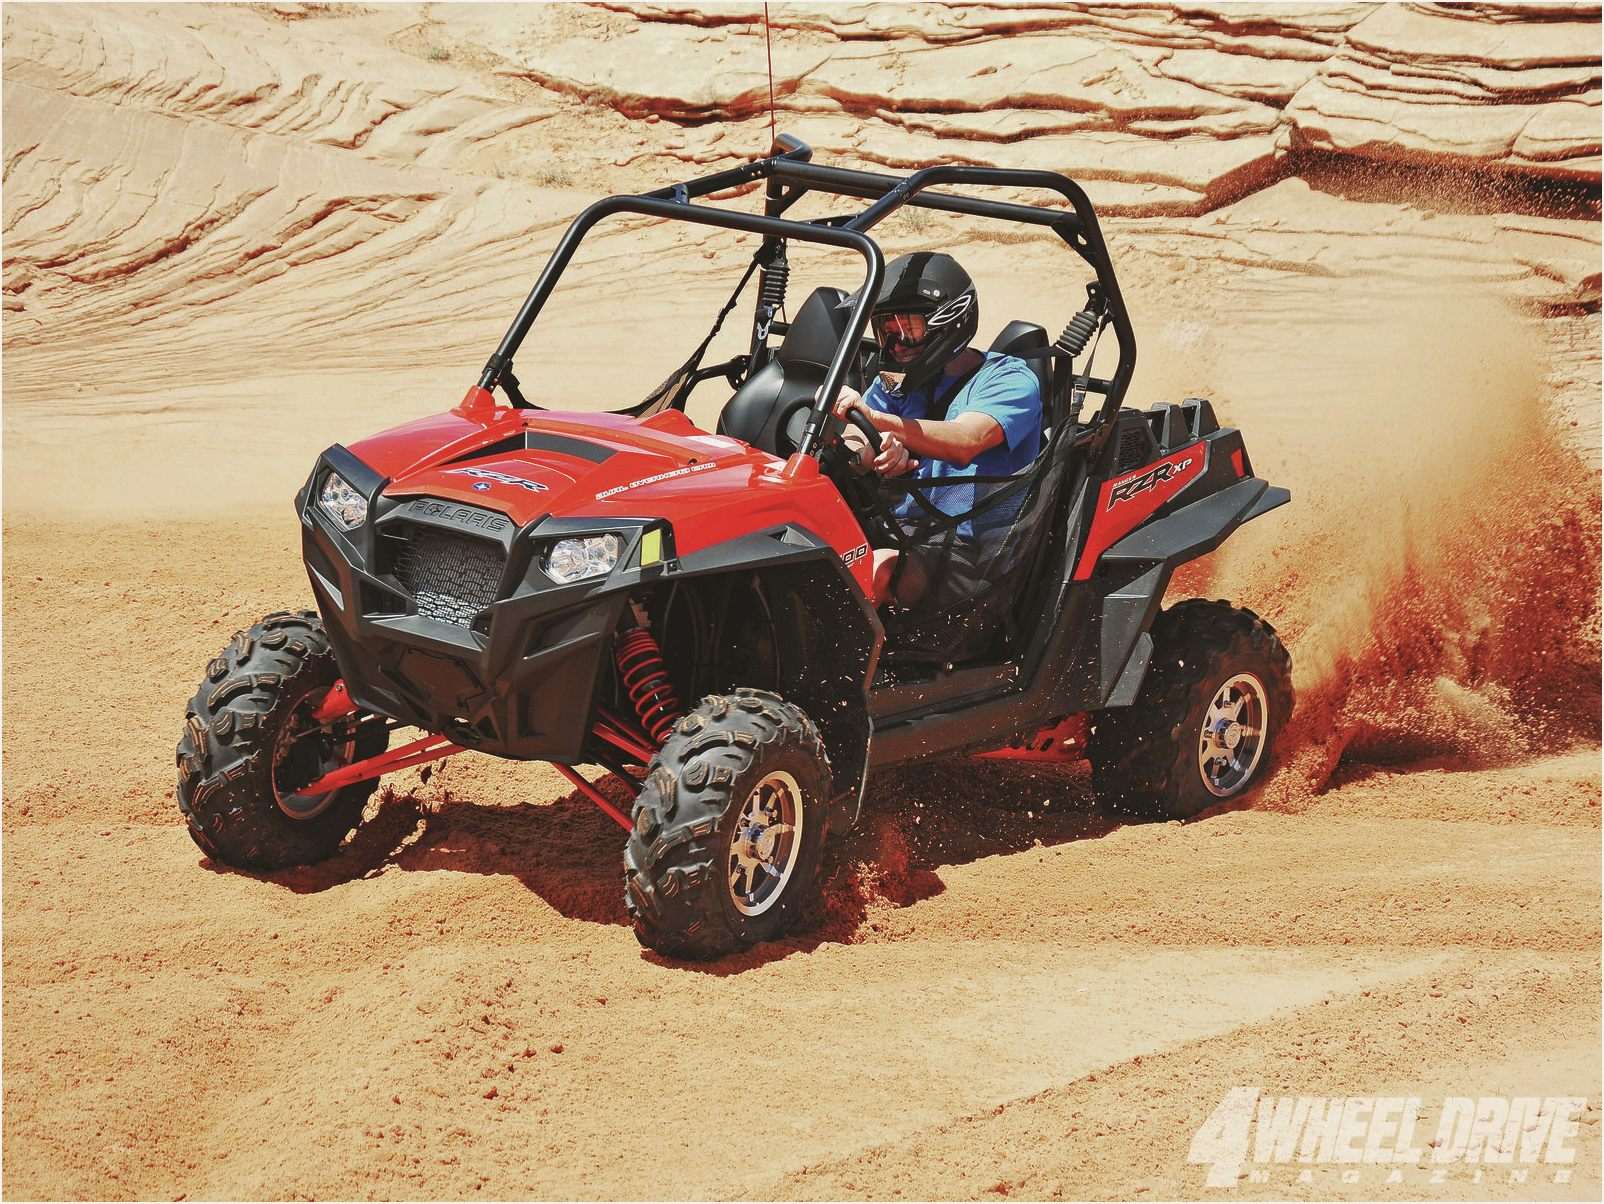 2011 Polaris Ranger RZR XP900: pics, specs and information ...